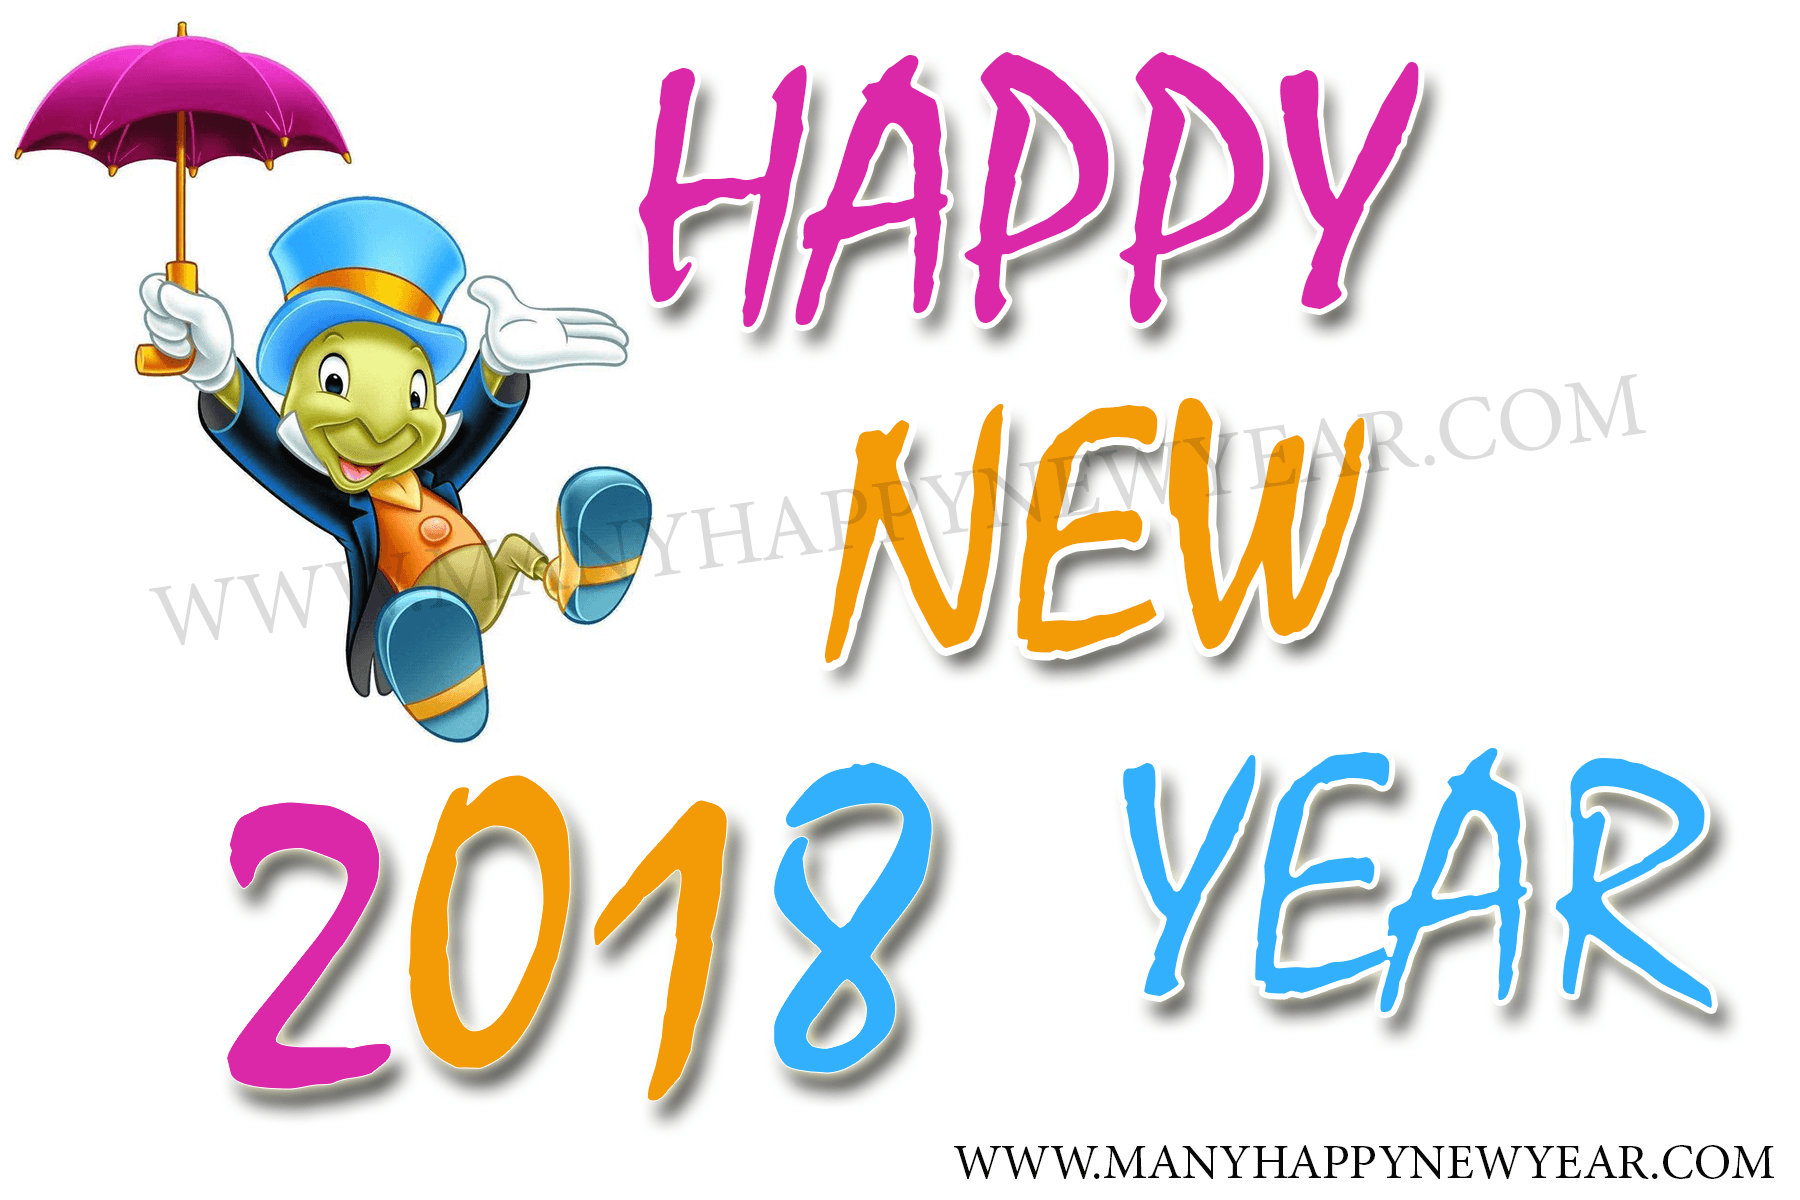 New Year\'s Eve 2018 Wallpapers - Wallpaper Cave